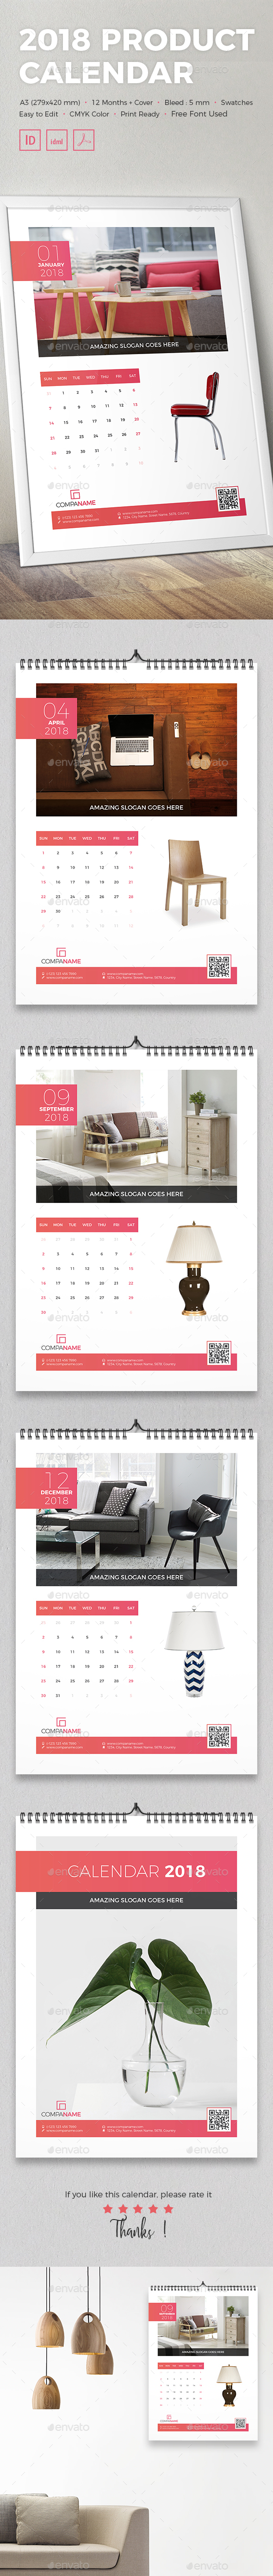 2018 Product Calendar - Calendars Stationery